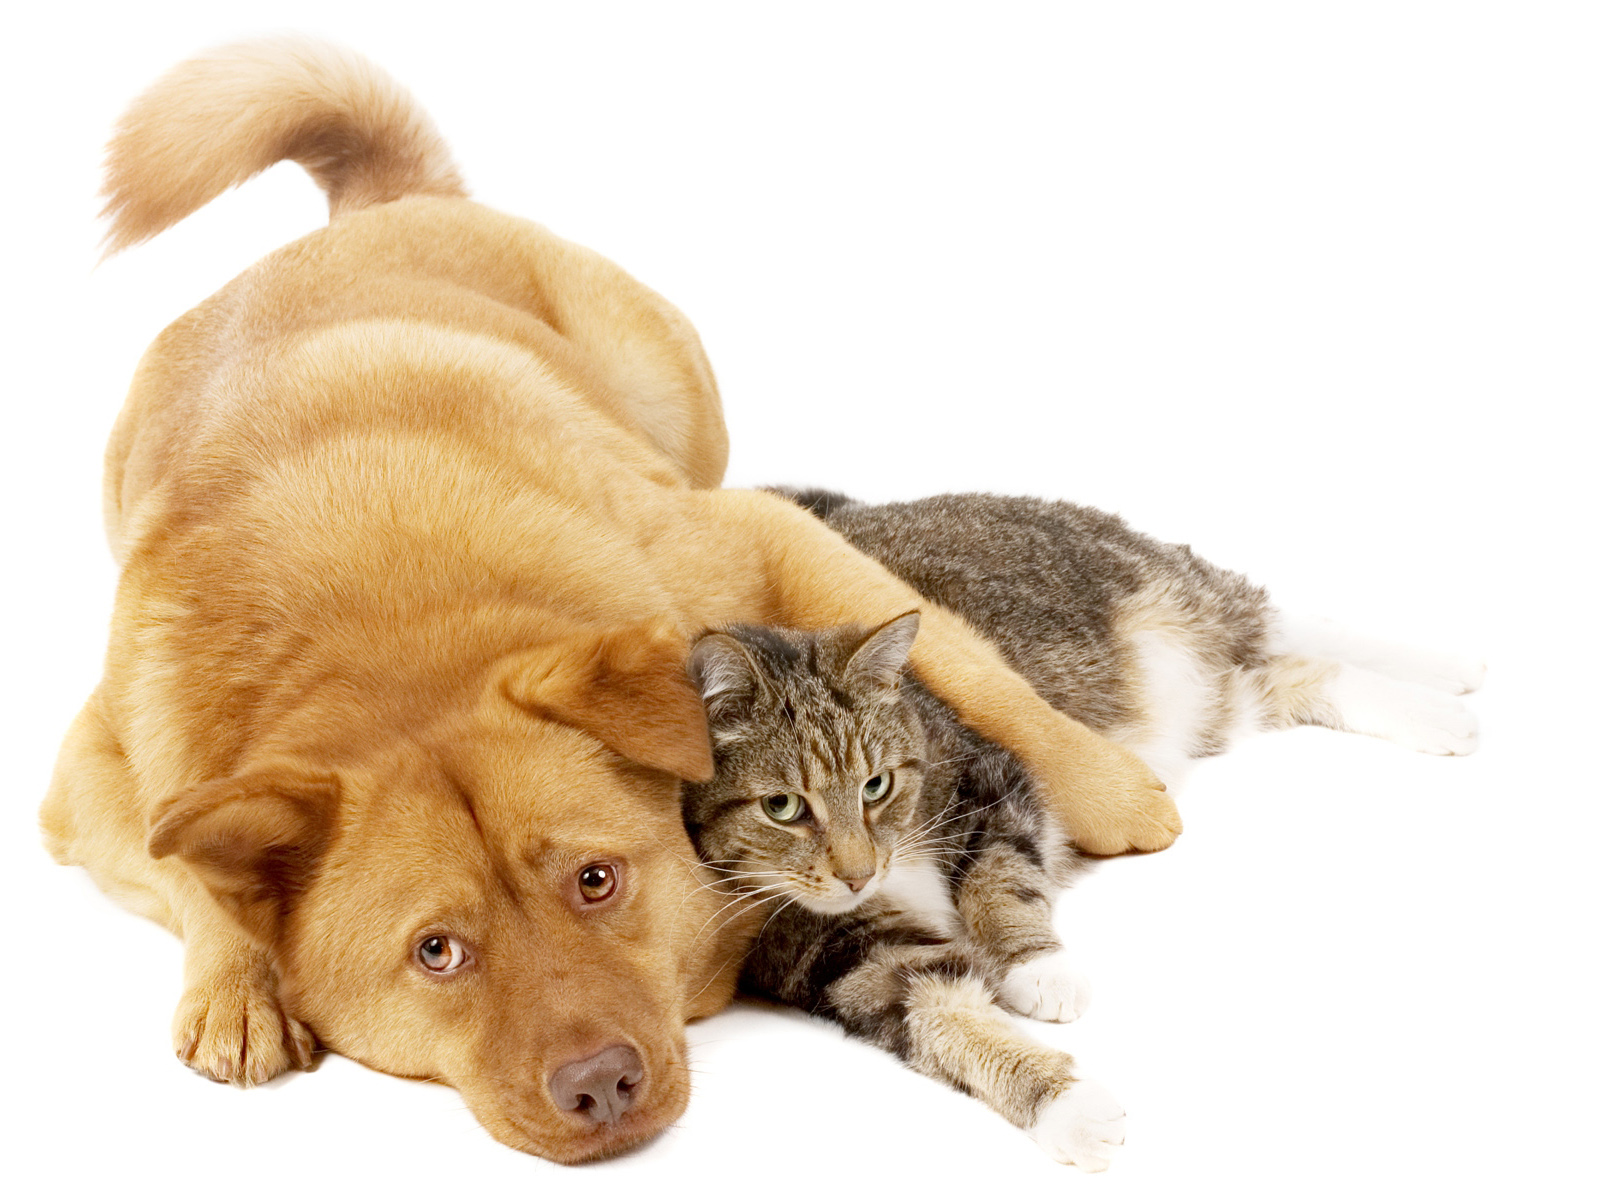 Pet Sitting Services Australia | First Class Pet Sitting